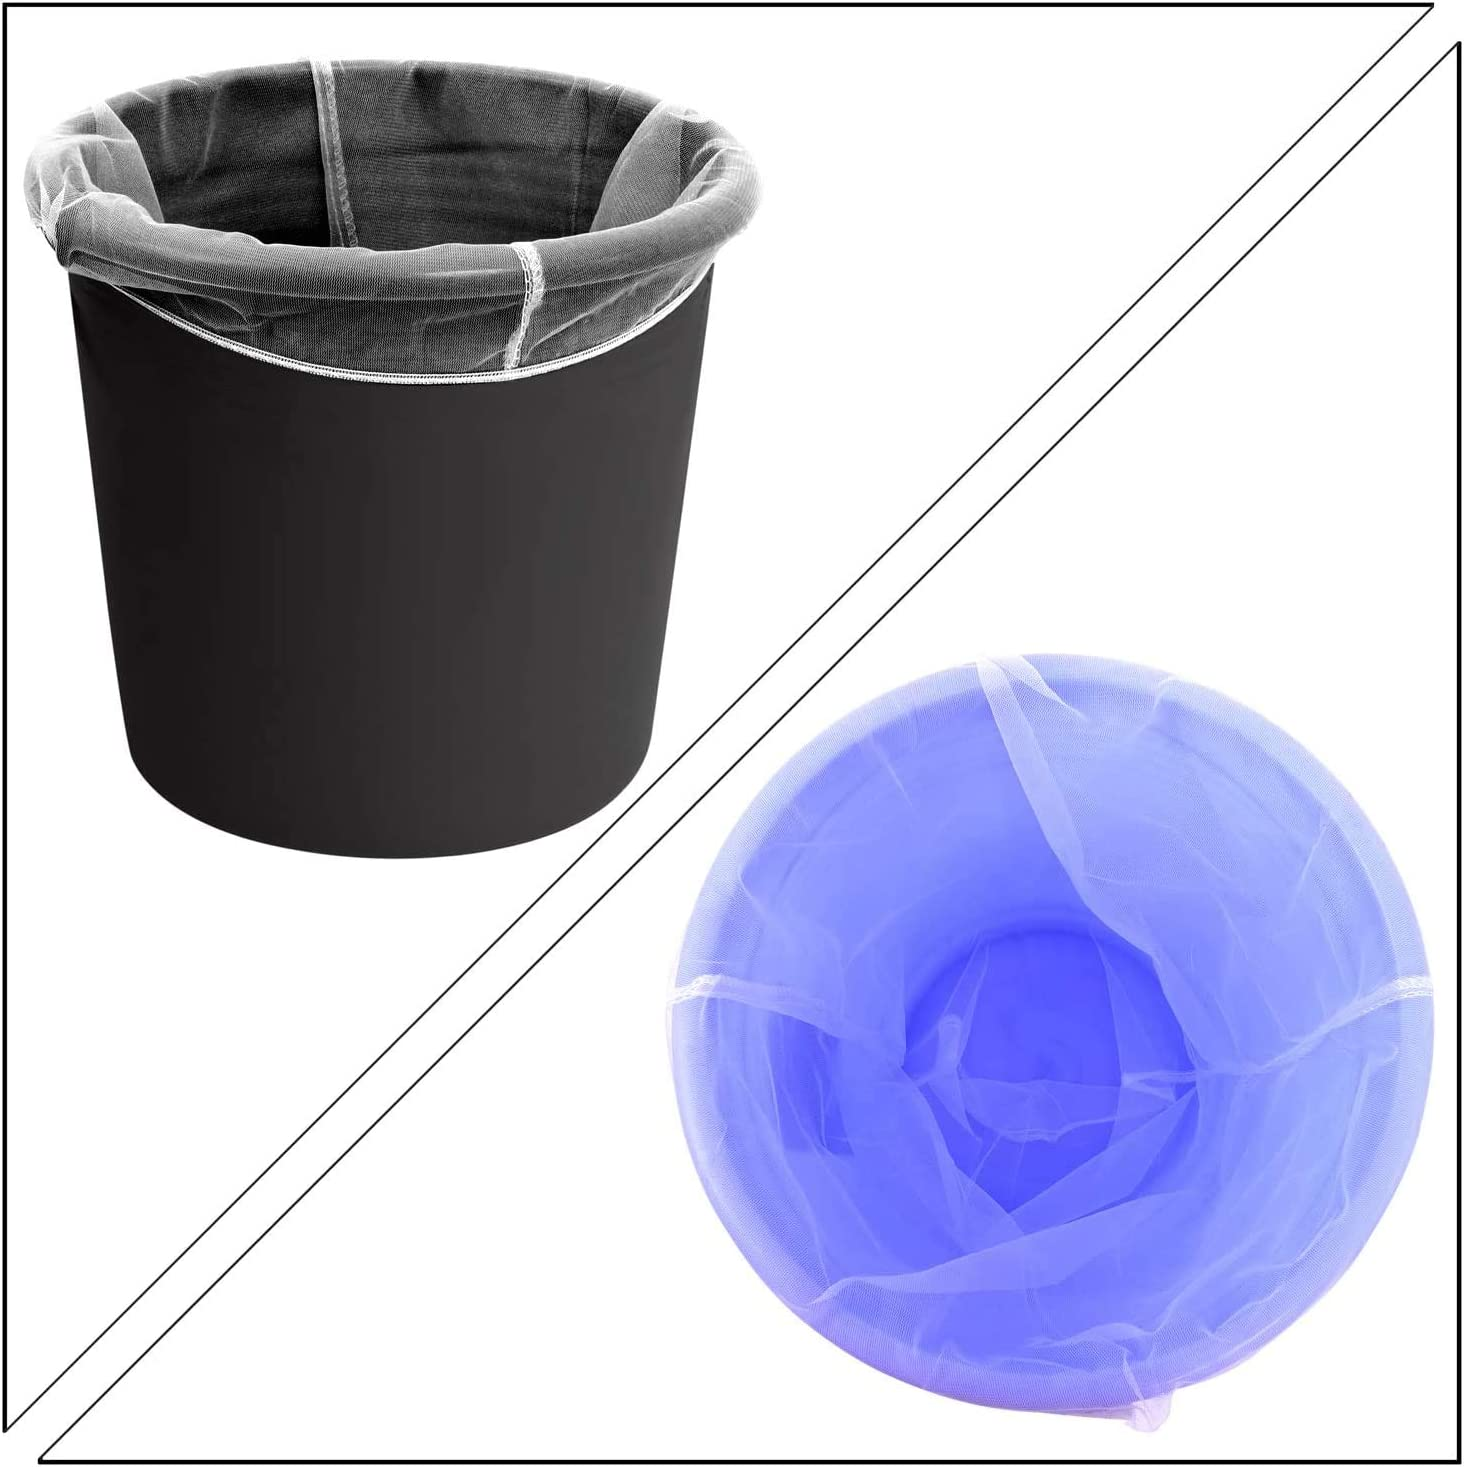 Elastic Opening Strainer Bags Filter Bags for Hydroponics /& Bucket Painting Gardening 15 Pieces Paint Strainer Bags Include 10 Pieces 5 Gallon /& 5 Pieces 2 Gallon White Fine Mesh Filters Bag